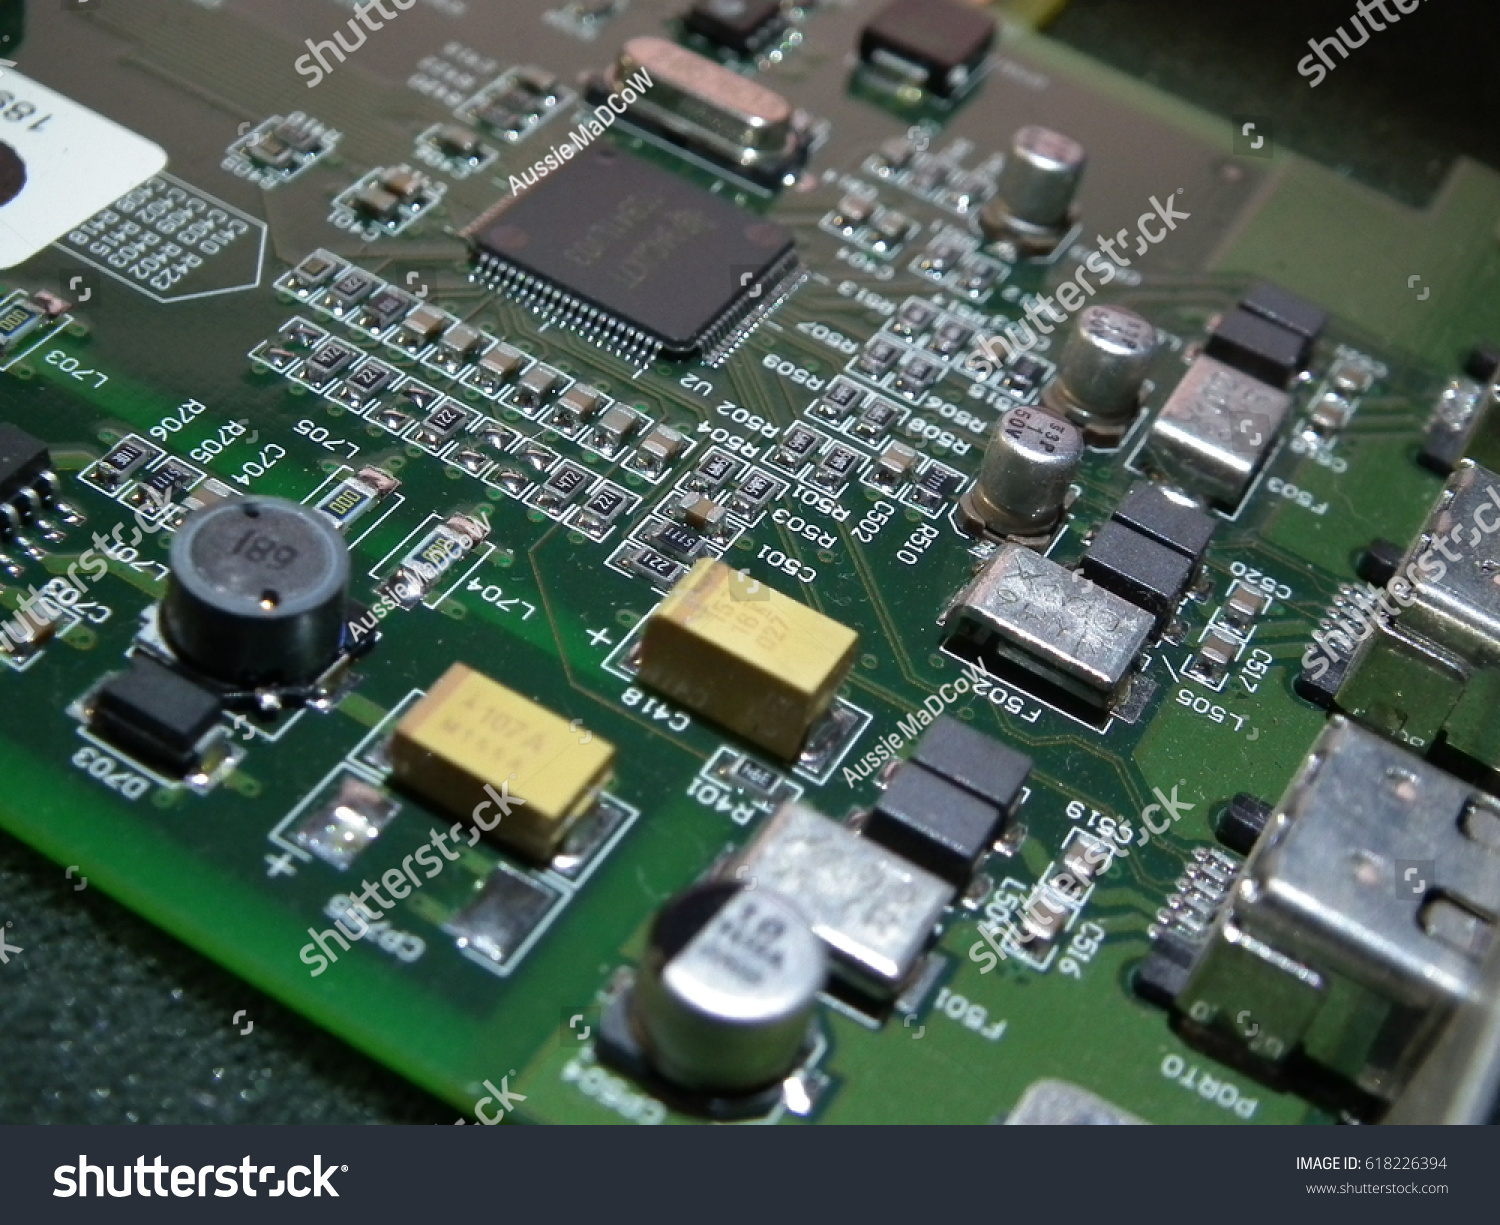 Electronics Circuit Board Printed Pcb With Components Id 618226394 Id618226394aspect133descriptionelectronics